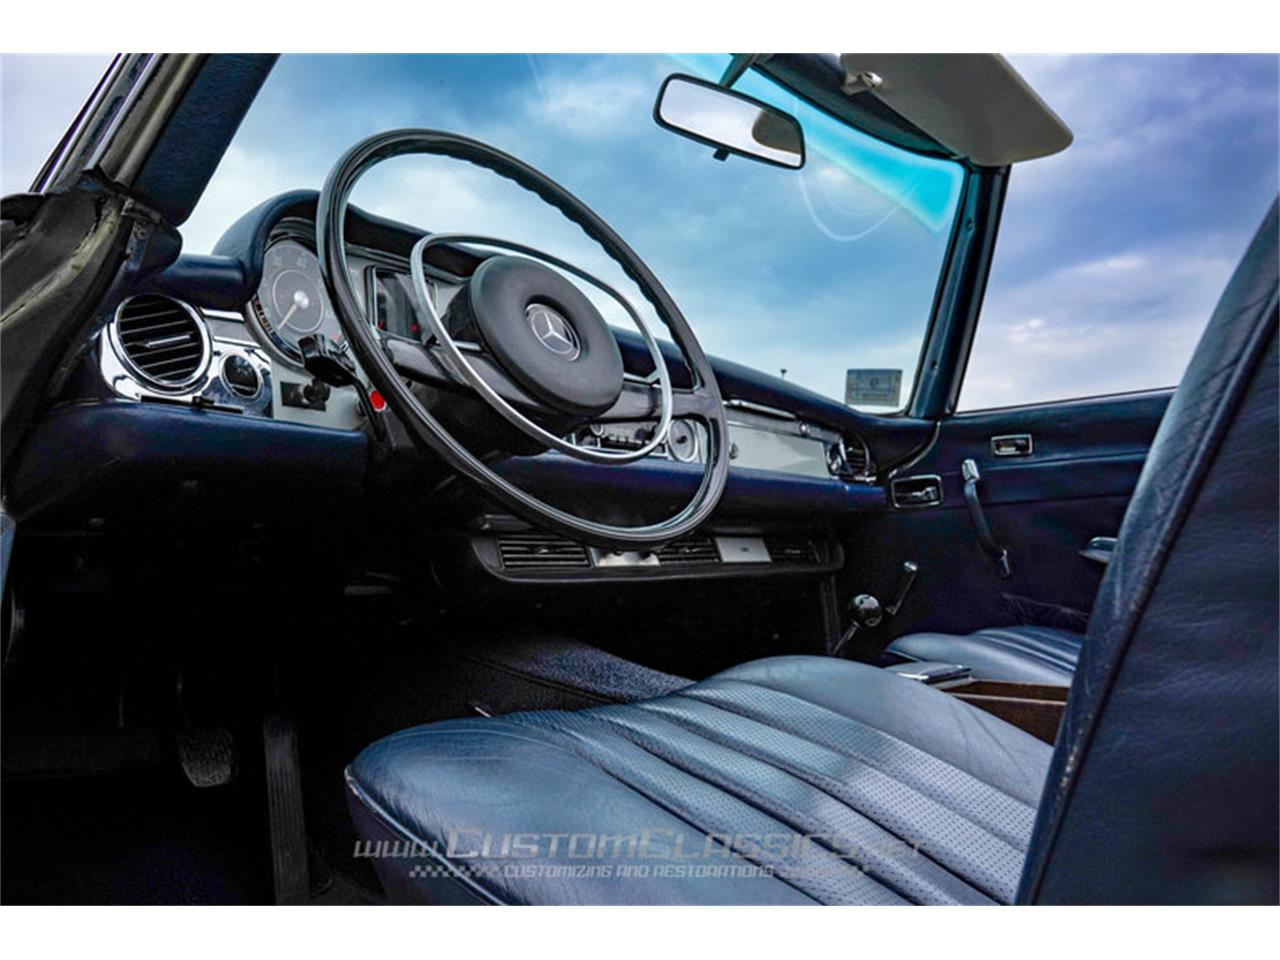 Large Picture of 1970 Mercedes-Benz 280SL located in Island Lake Illinois - $68,500.00 - NMYI